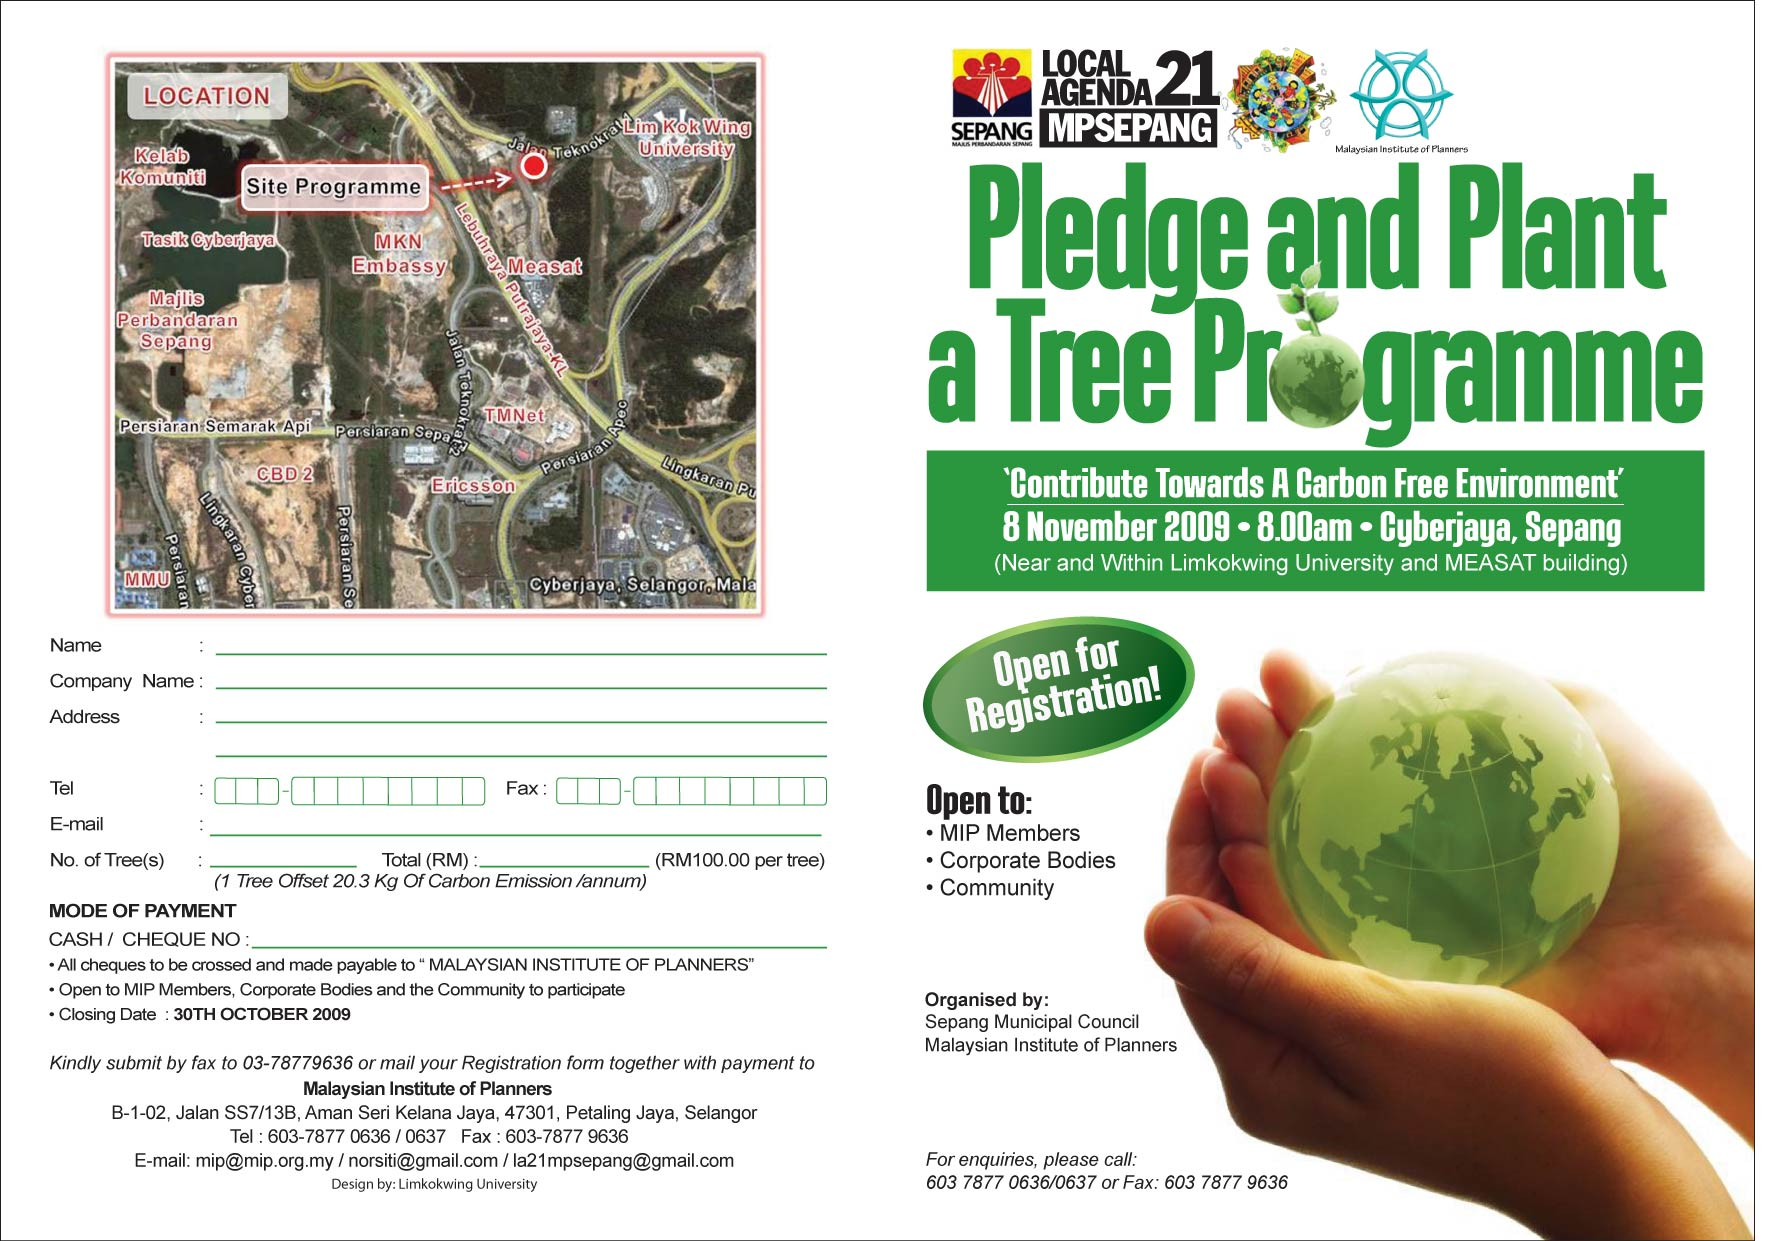 Cyberjaya: Pledge and Plant a Tree Program